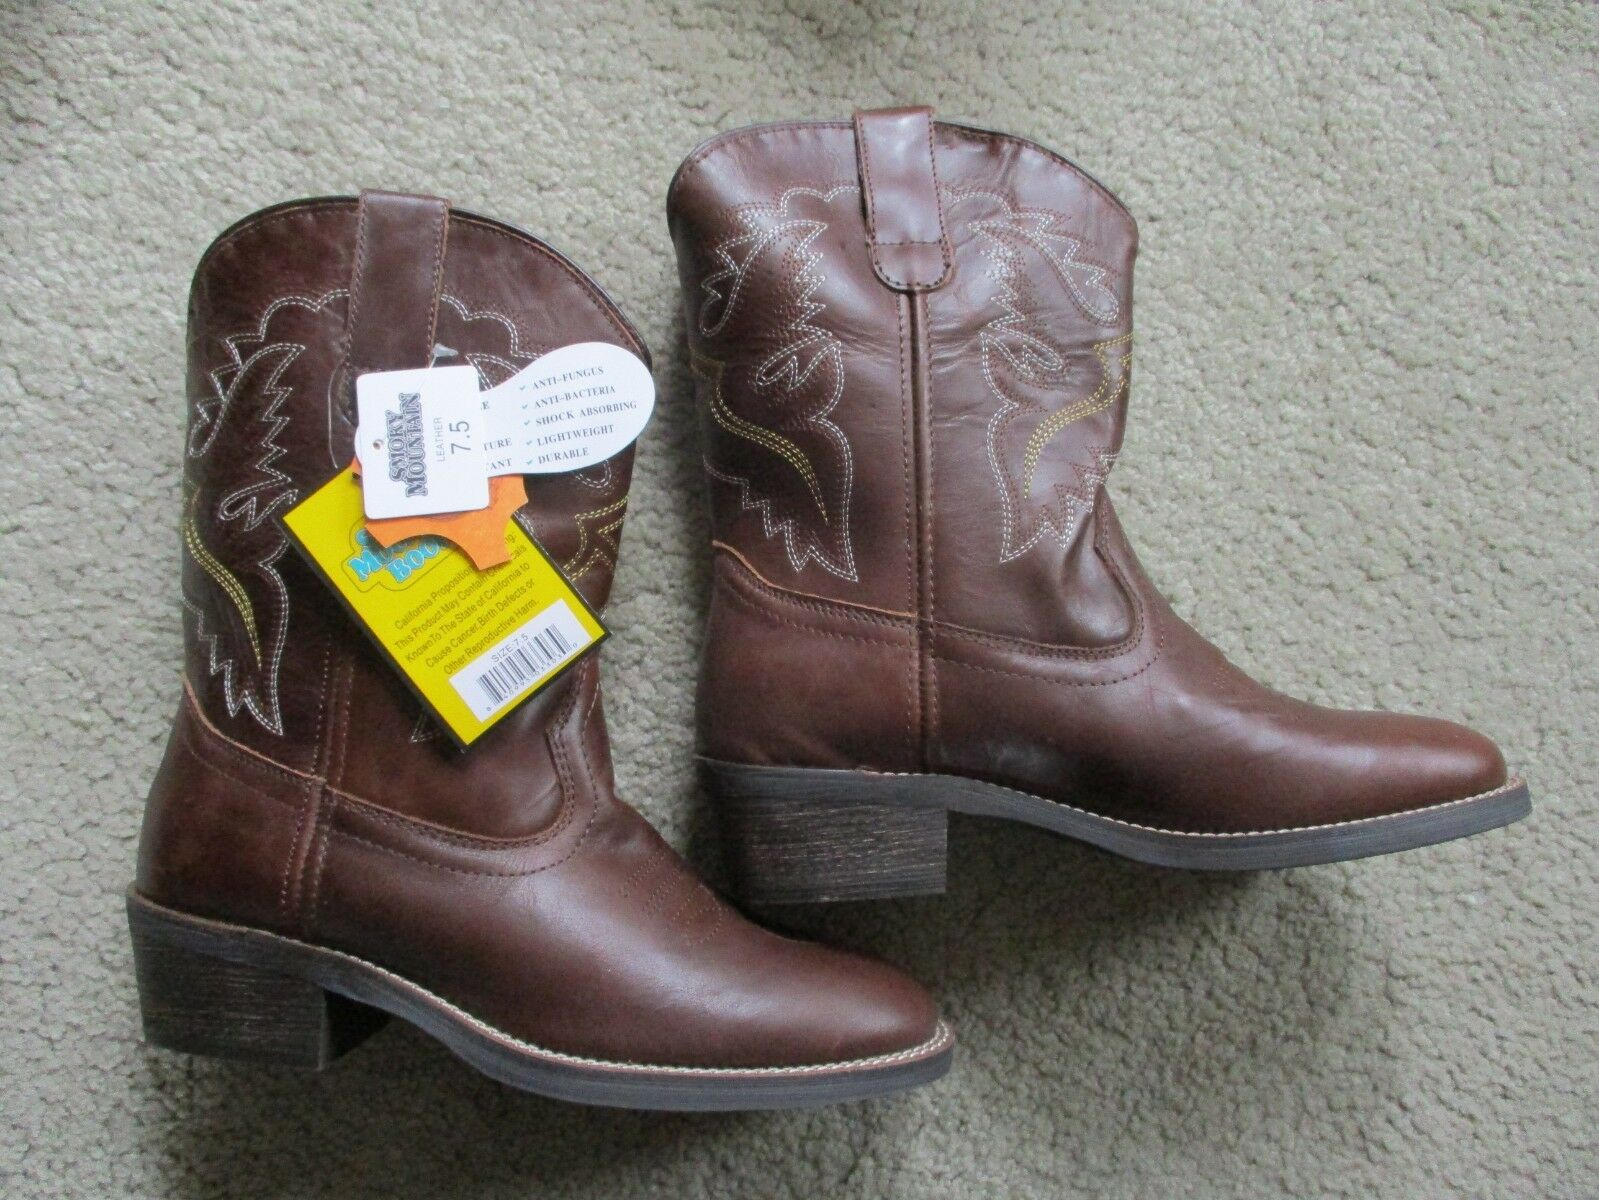 ladies Smoky Mountain leather western cowboy riding boots 7.5